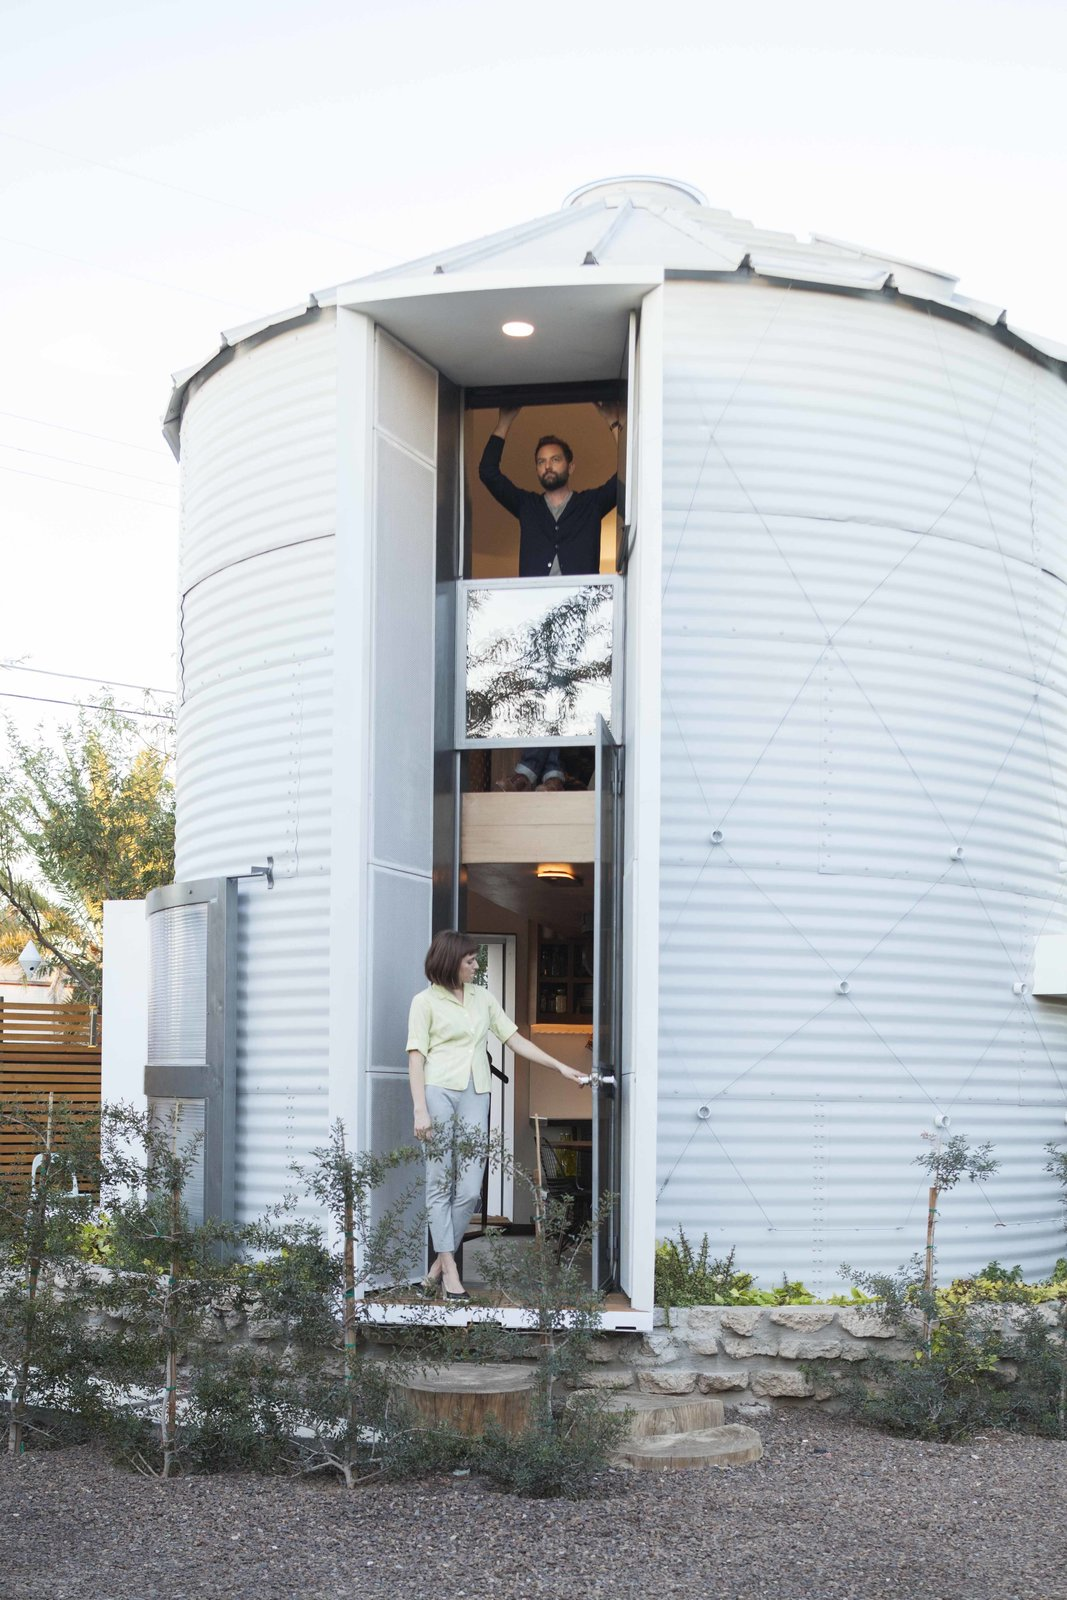 Kaiser added ten inches of spray foam insulation between the exterior shell and the interior of the house. He also fabricated all of the doors and windows in the structure.  Desert Homes by Heather Corcoran from You Won't Believe the Cozy Home Inside This Converted Grain Silo